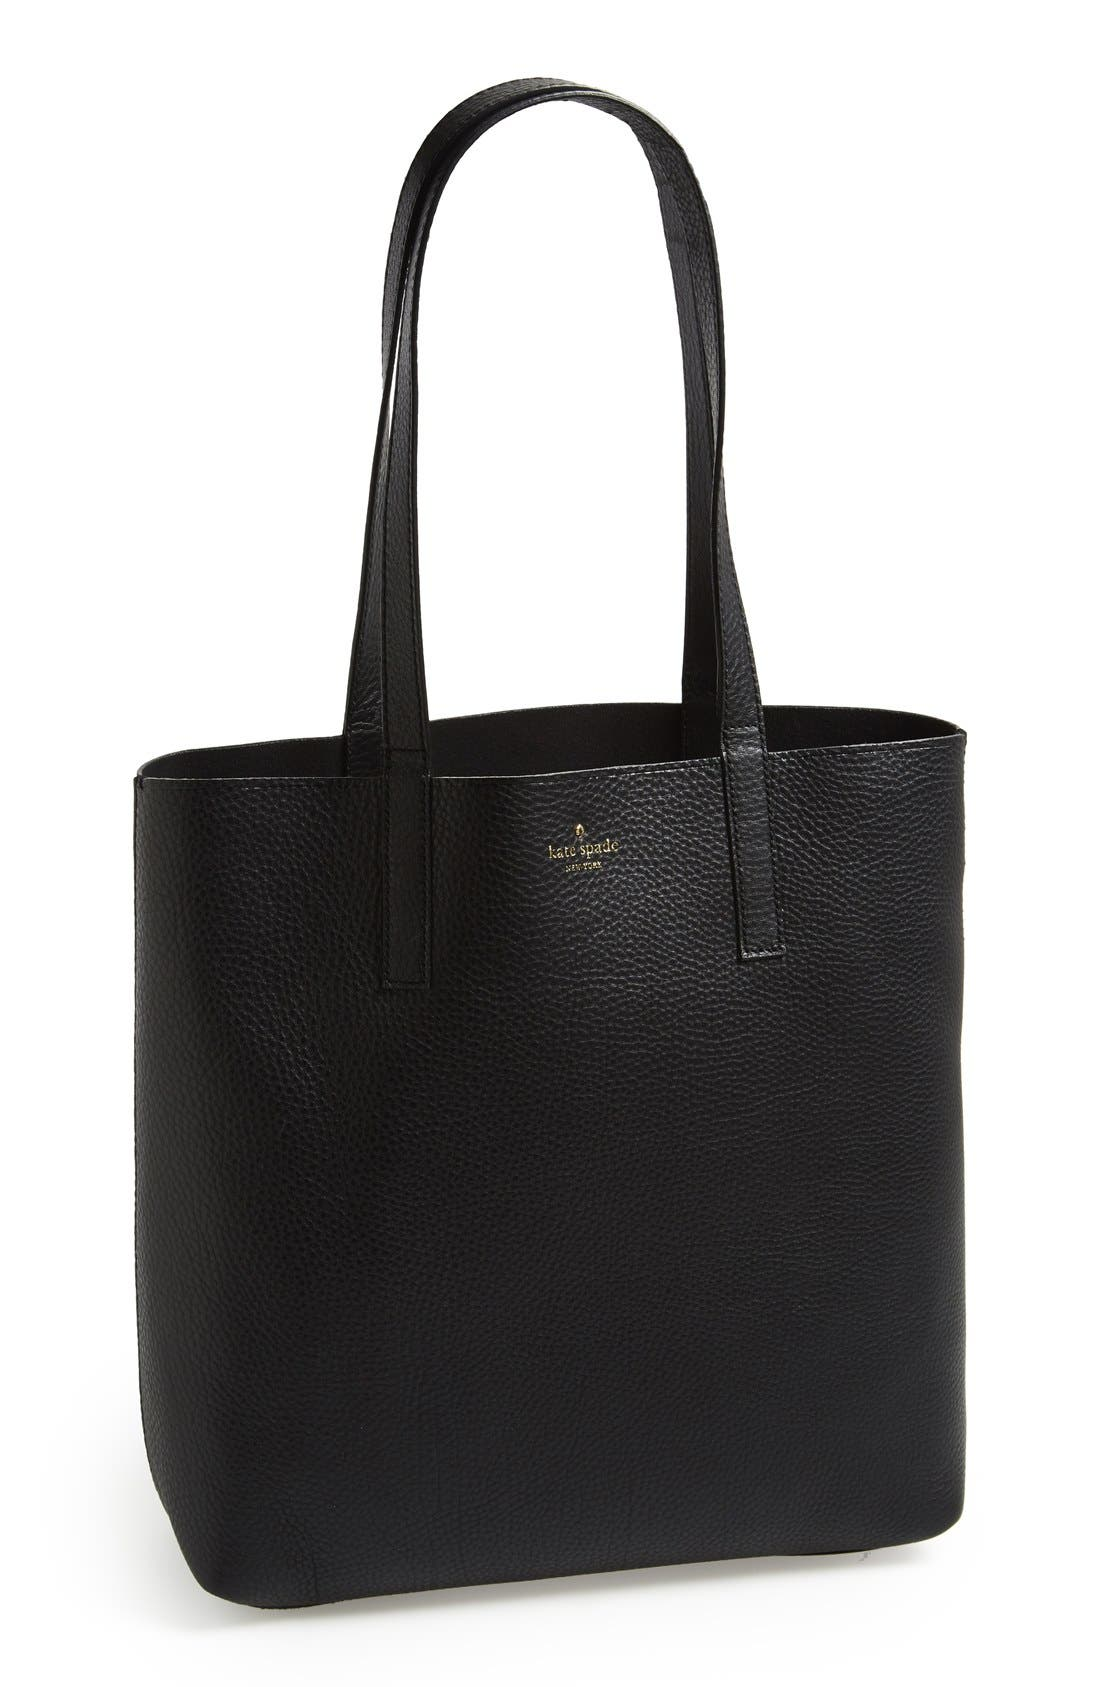 Alternate Image 1 Selected - kate spade new york 'henry lane - lulu' tote